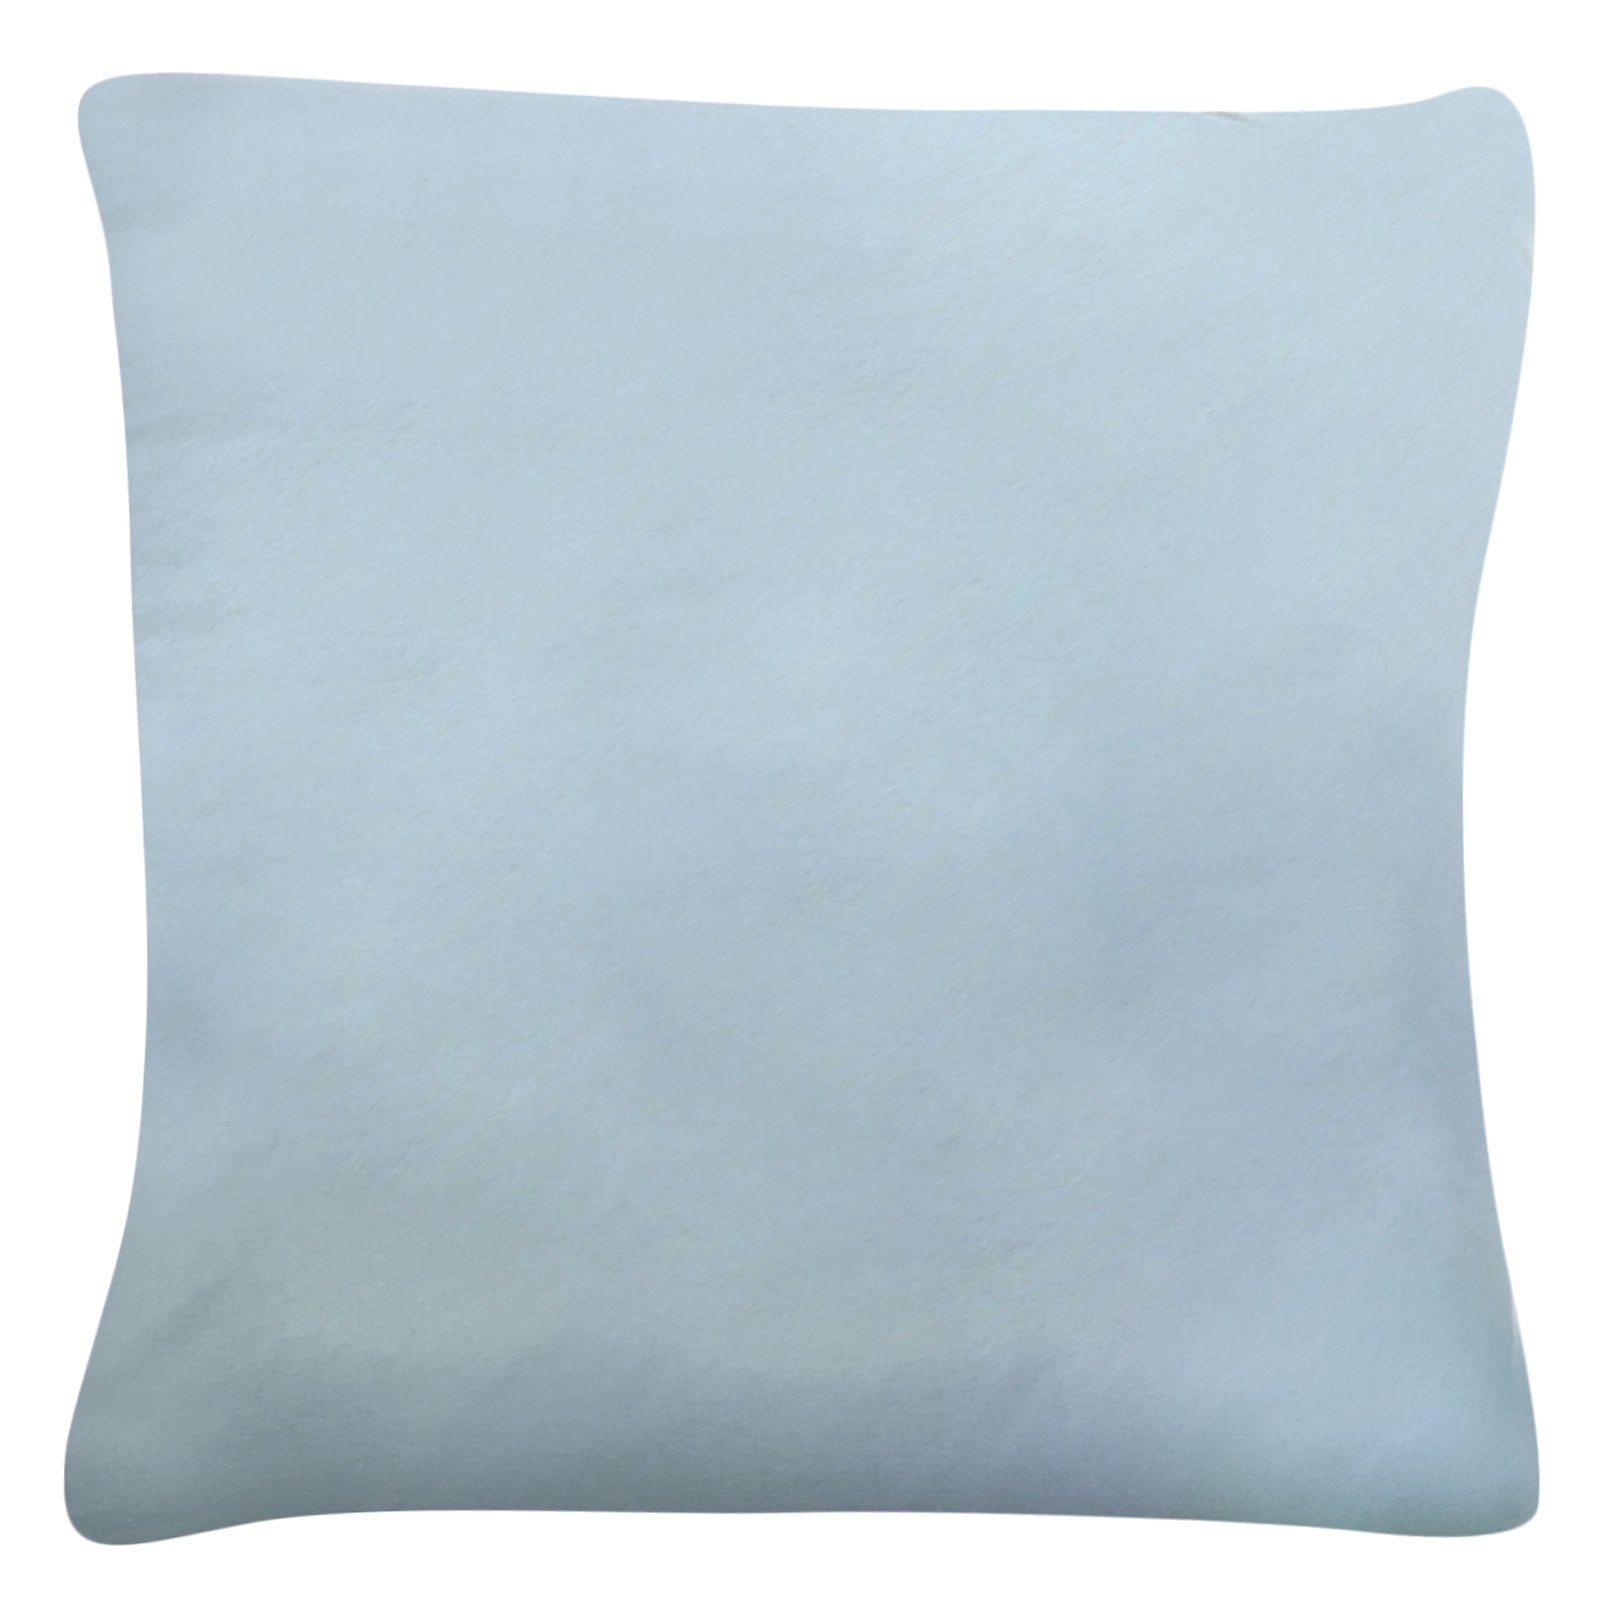 Lushomes Poly Pillow Insert Square Cushion Filler 16'' Inches - Packs Available by LUSHOMES